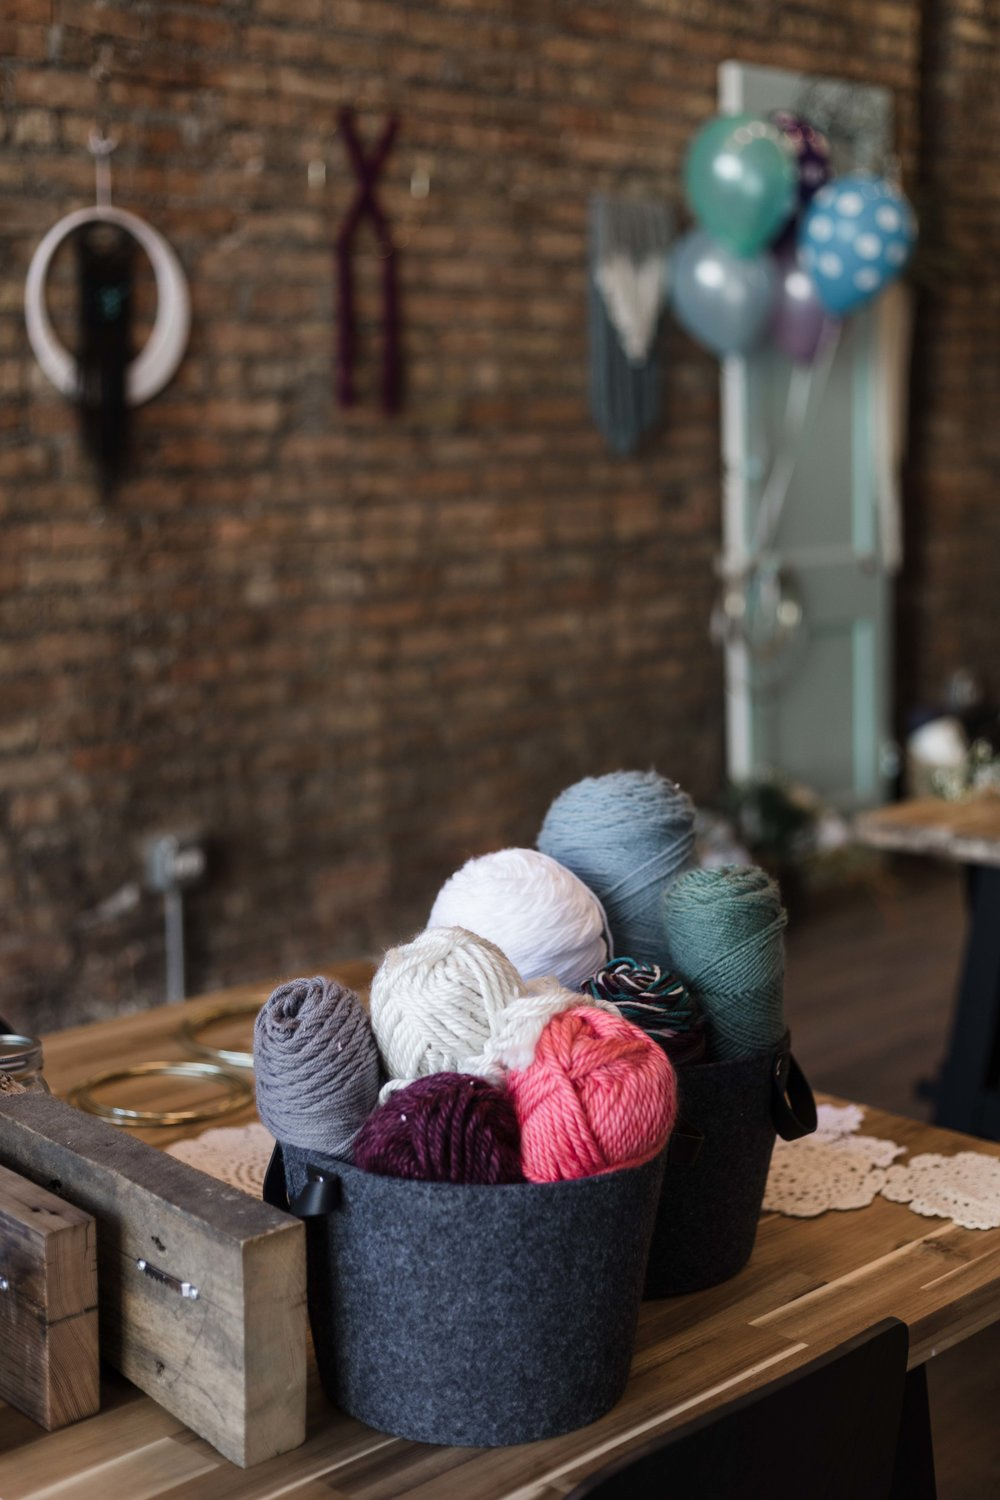 Yarn for crafting event by The Glossary held in Indigo & Violet Studio on Chicago's north side